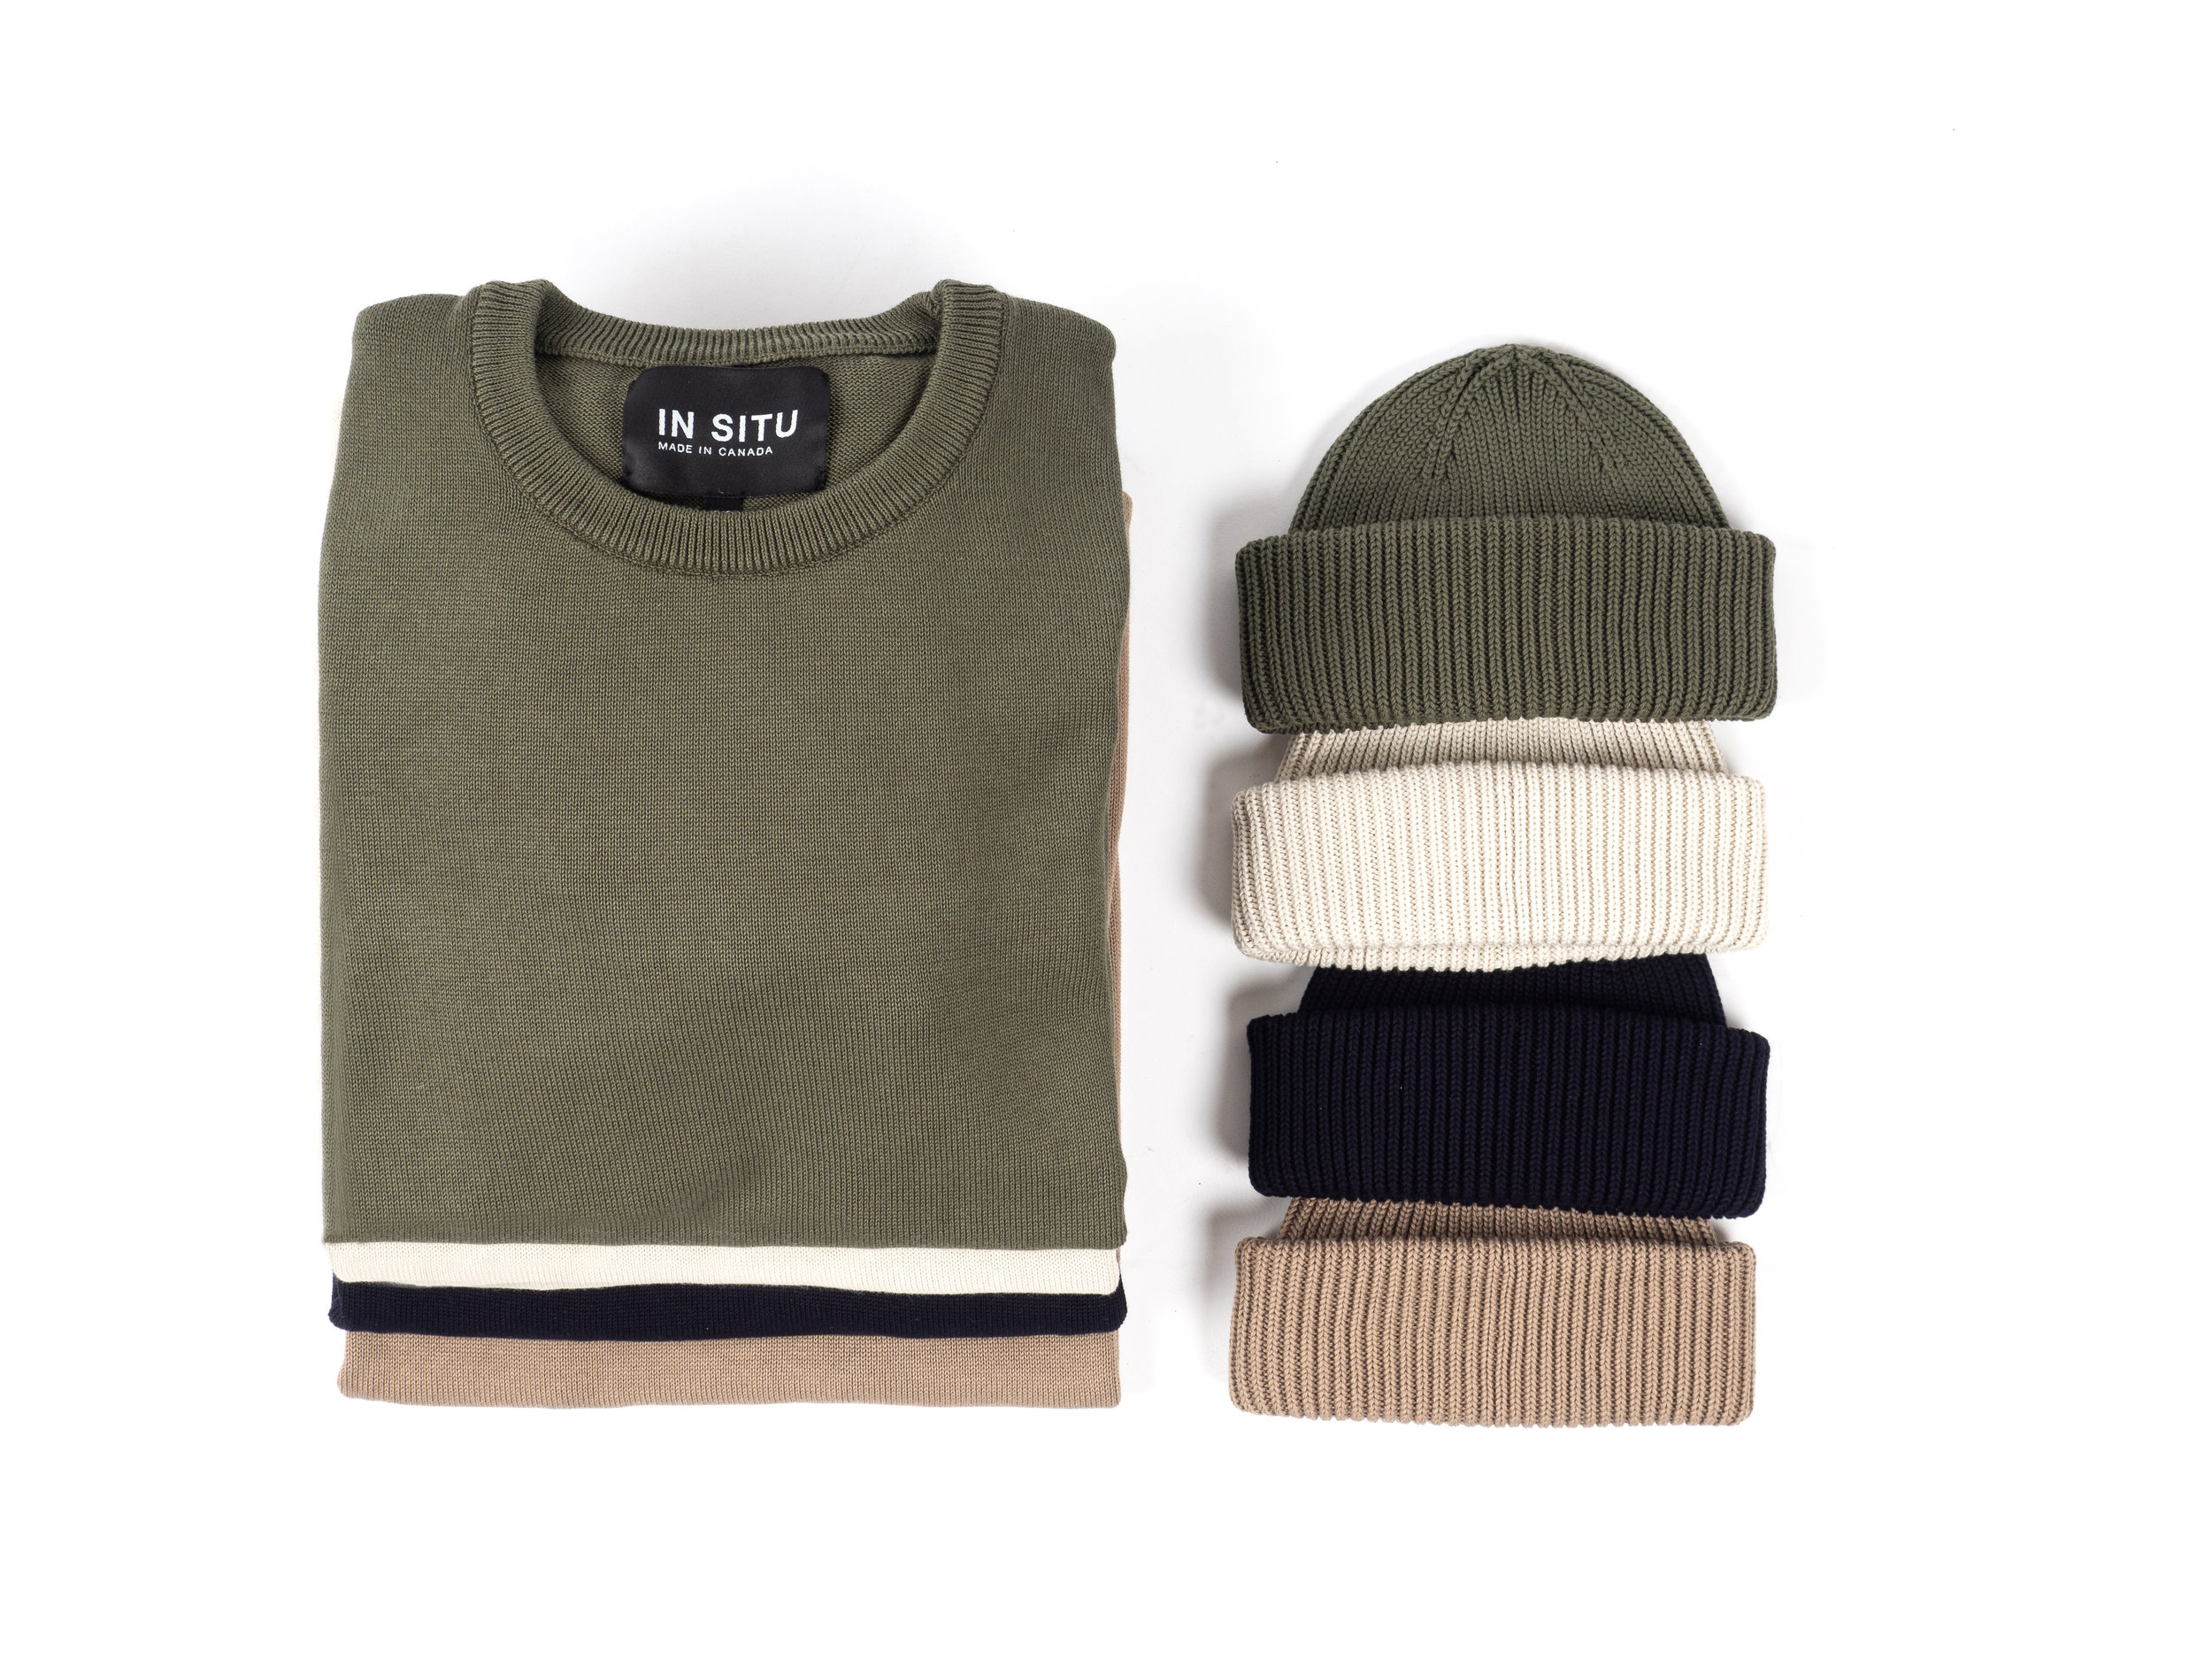 IN SITU Cotton Sweaters and Beanies    VIEW THIS FEATURE